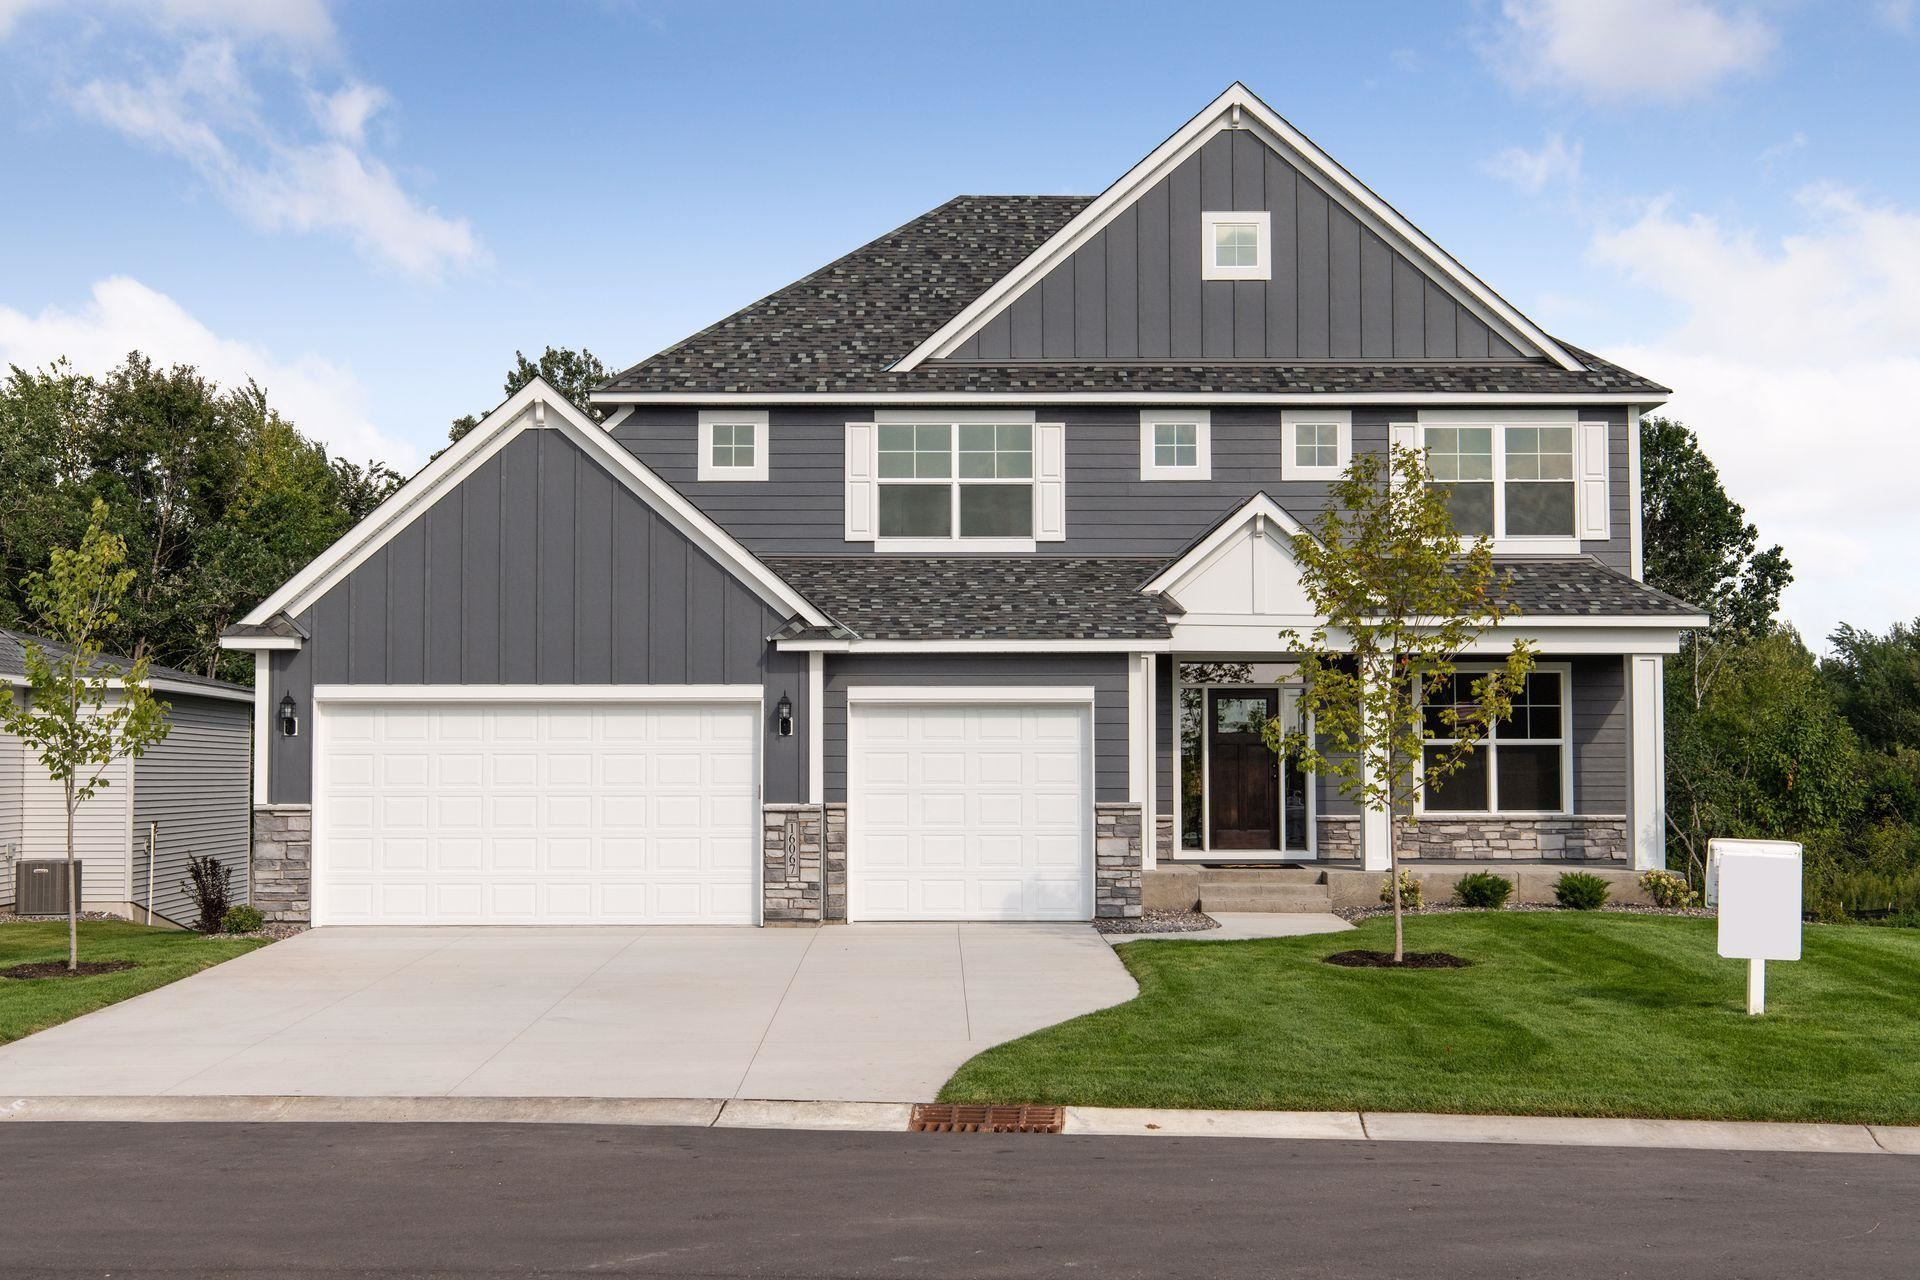 16067 Norway St NW, Andover, MN 55304 - #: 5540211